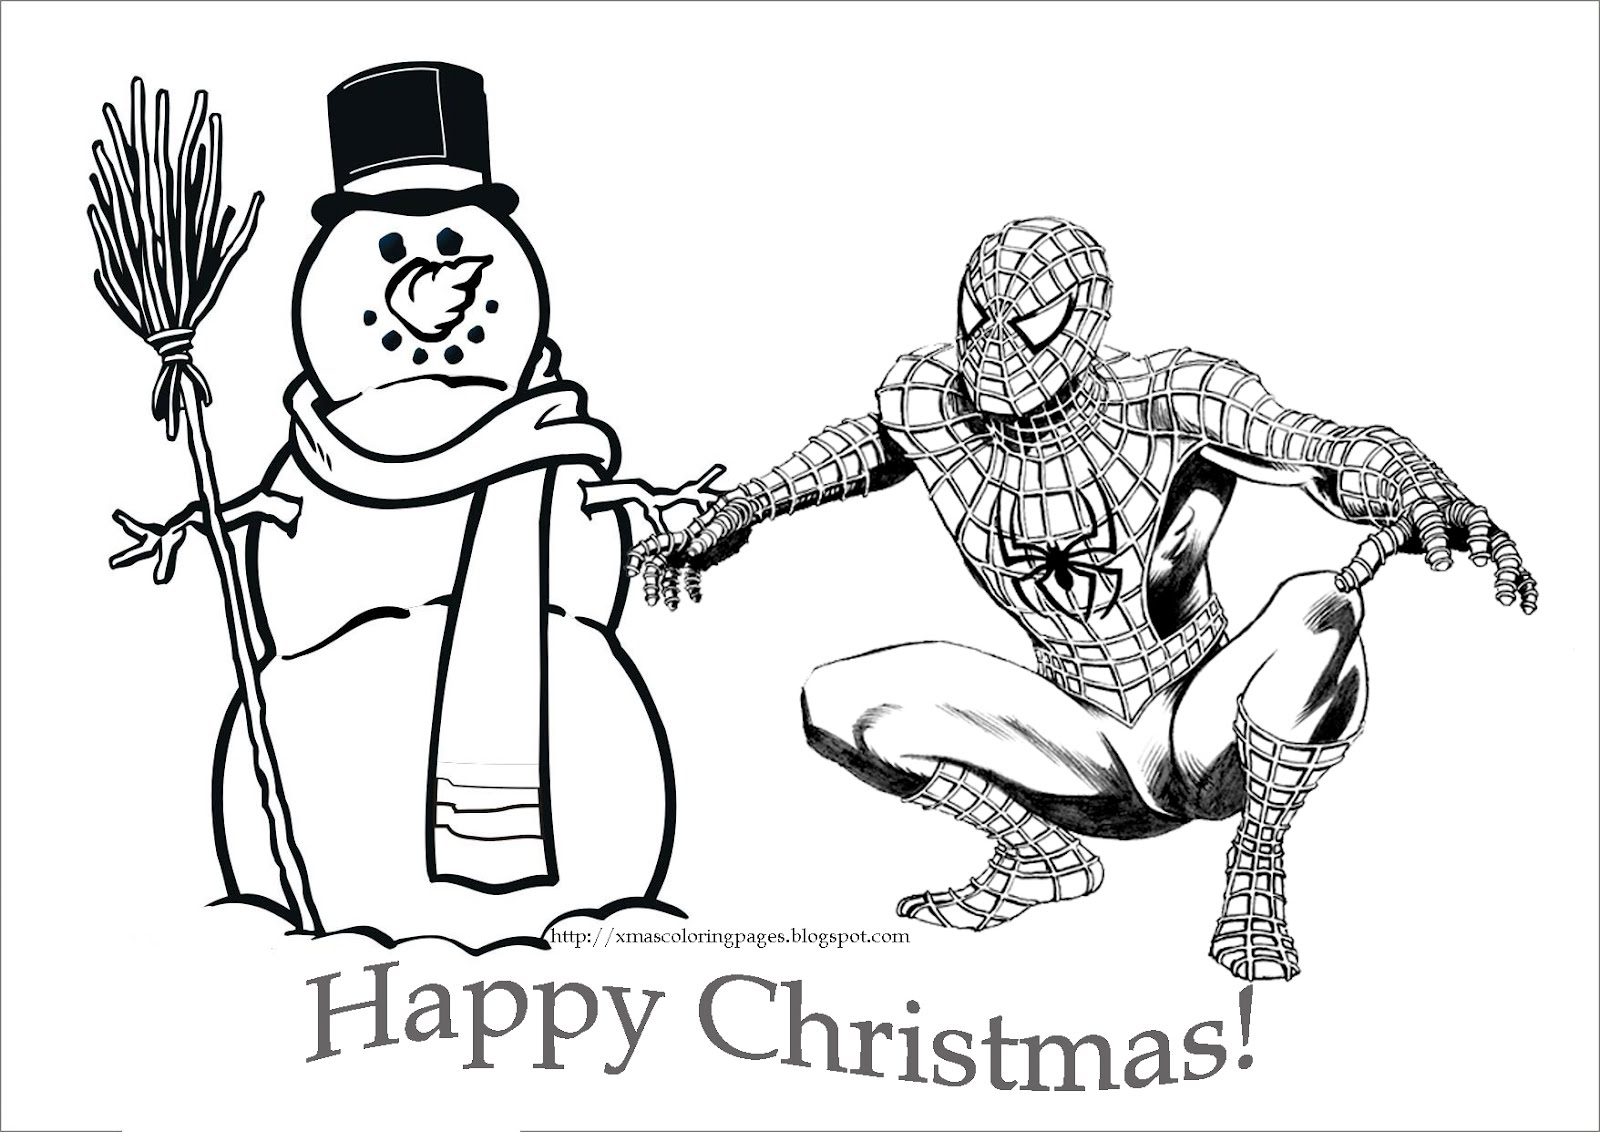 spiderman coloring pages venom - Spiderman Coloring Pages Kids